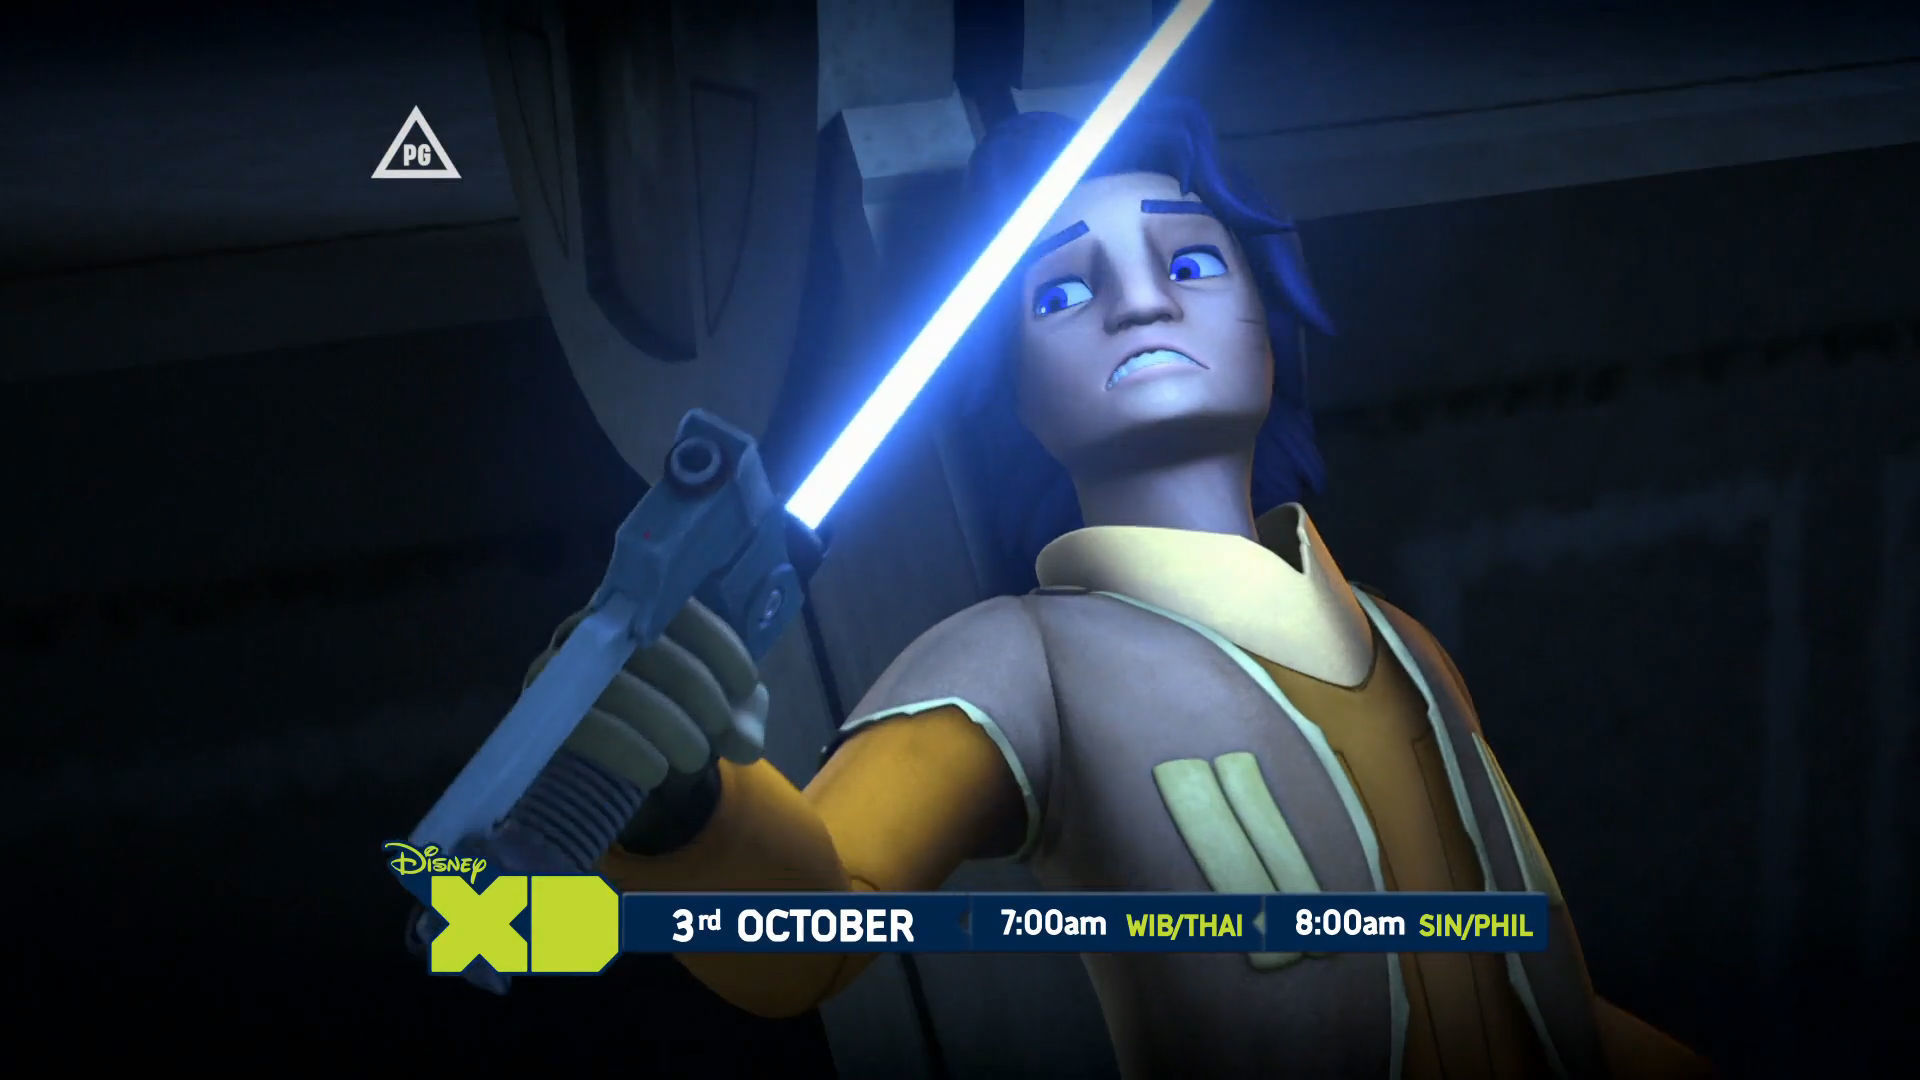 Star Wars Rebels: The Siege Of Lothal - Vadar